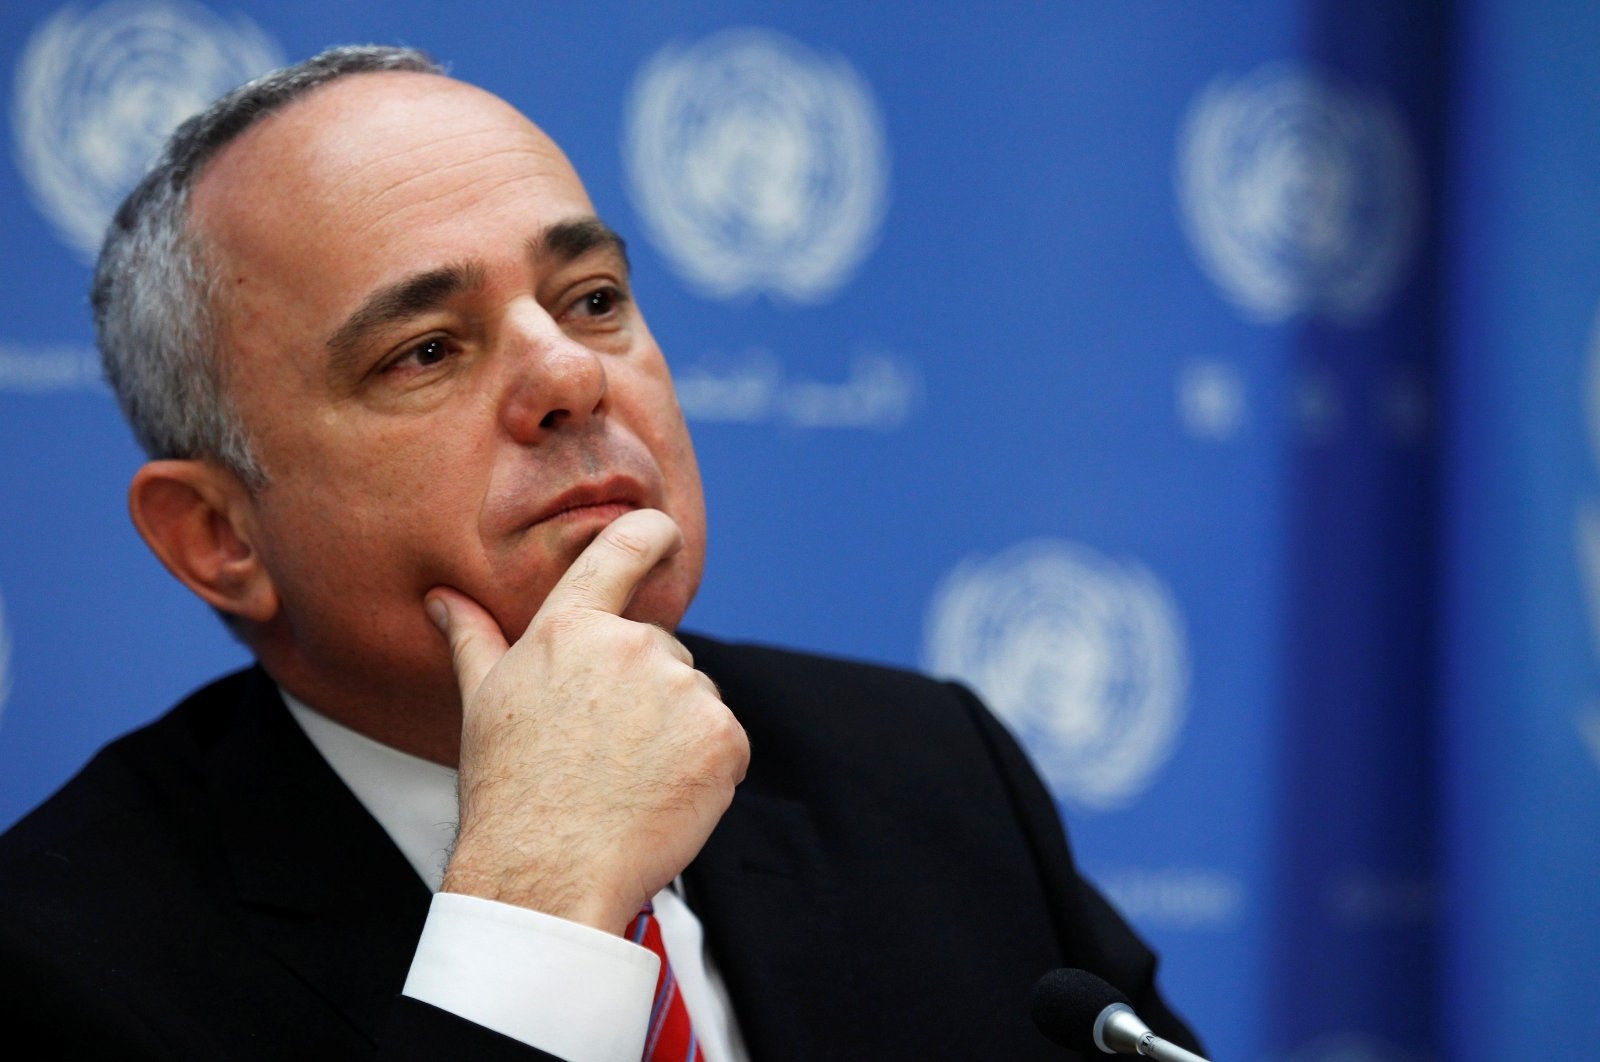 Israeli Energy Minister Yuval Steinitz attends a news conference after a meeting of the Ad Hoc Liaison Committee during the 68th United Nations General Assembly at U.N. headquarters in New York, Sept, 25, 2013. (Reuters Photo)